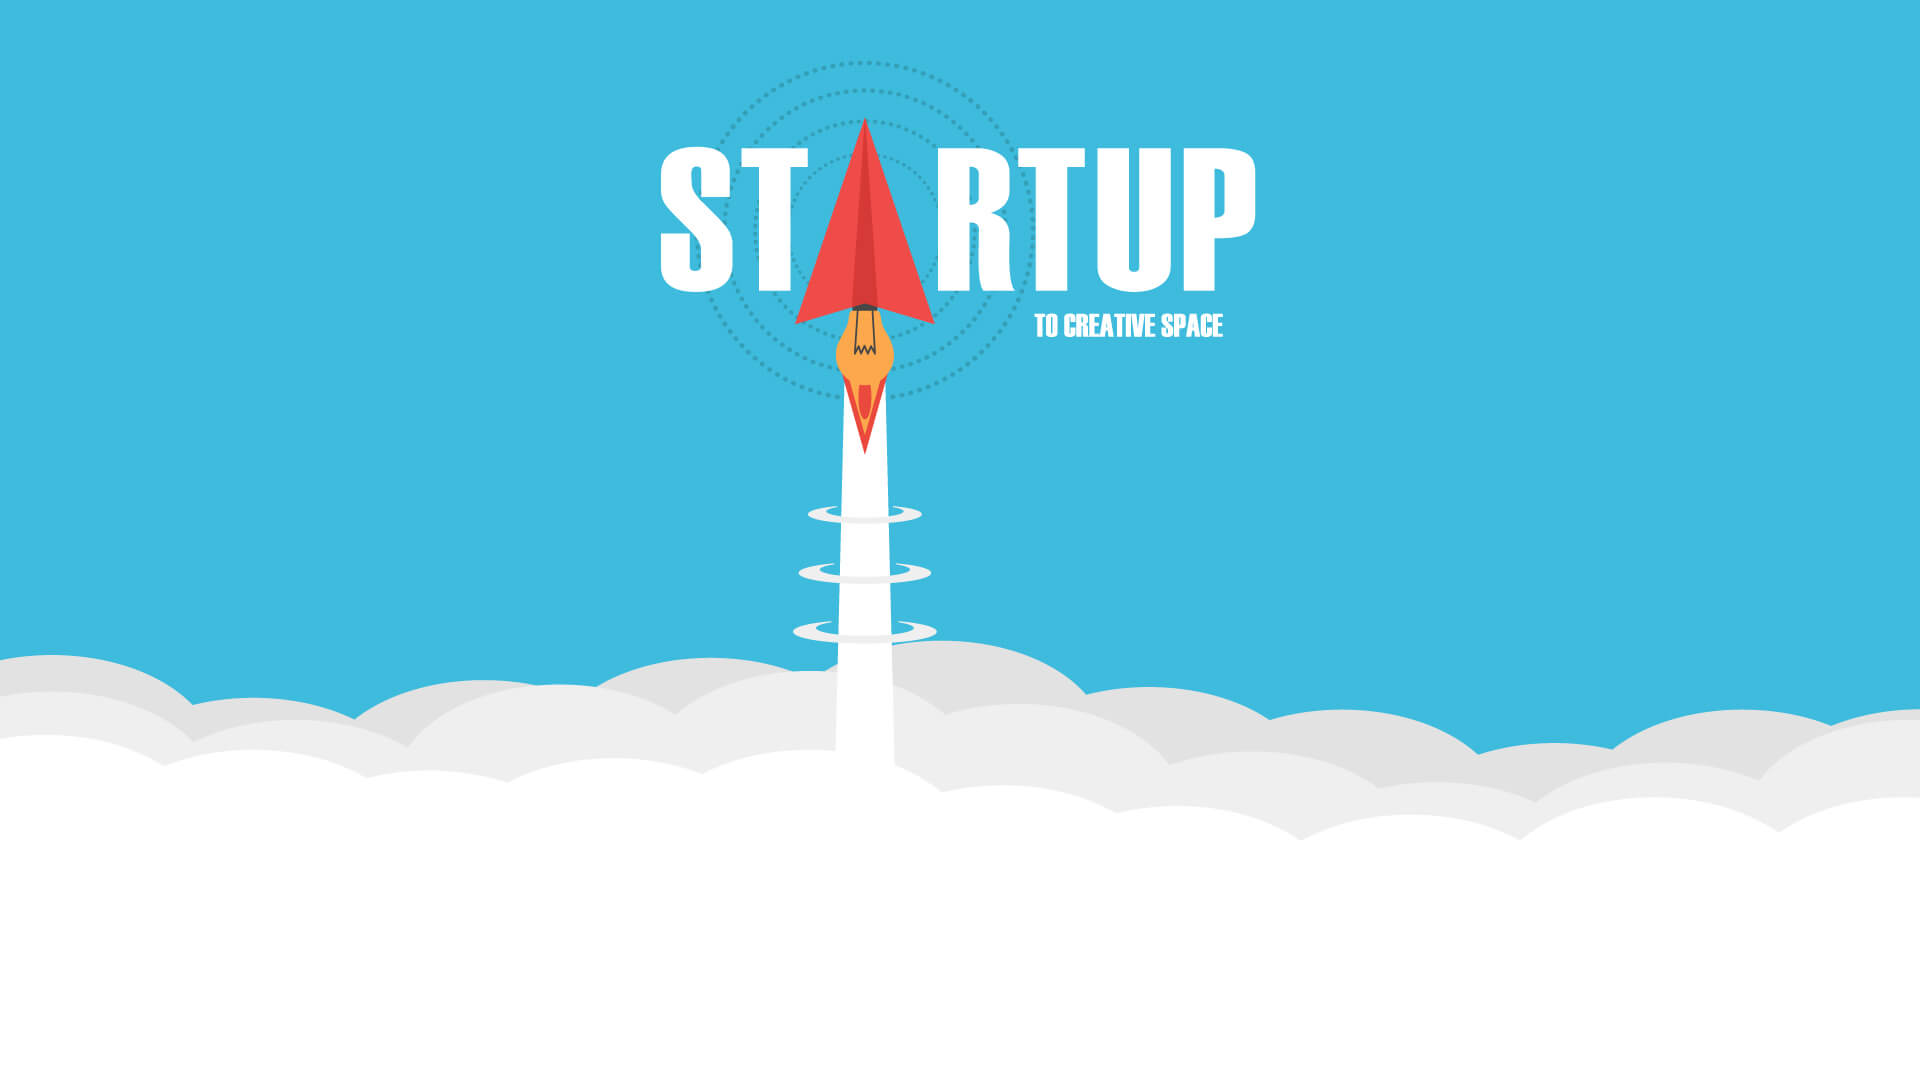 Contact Startup Companies - Best Job Opportunities